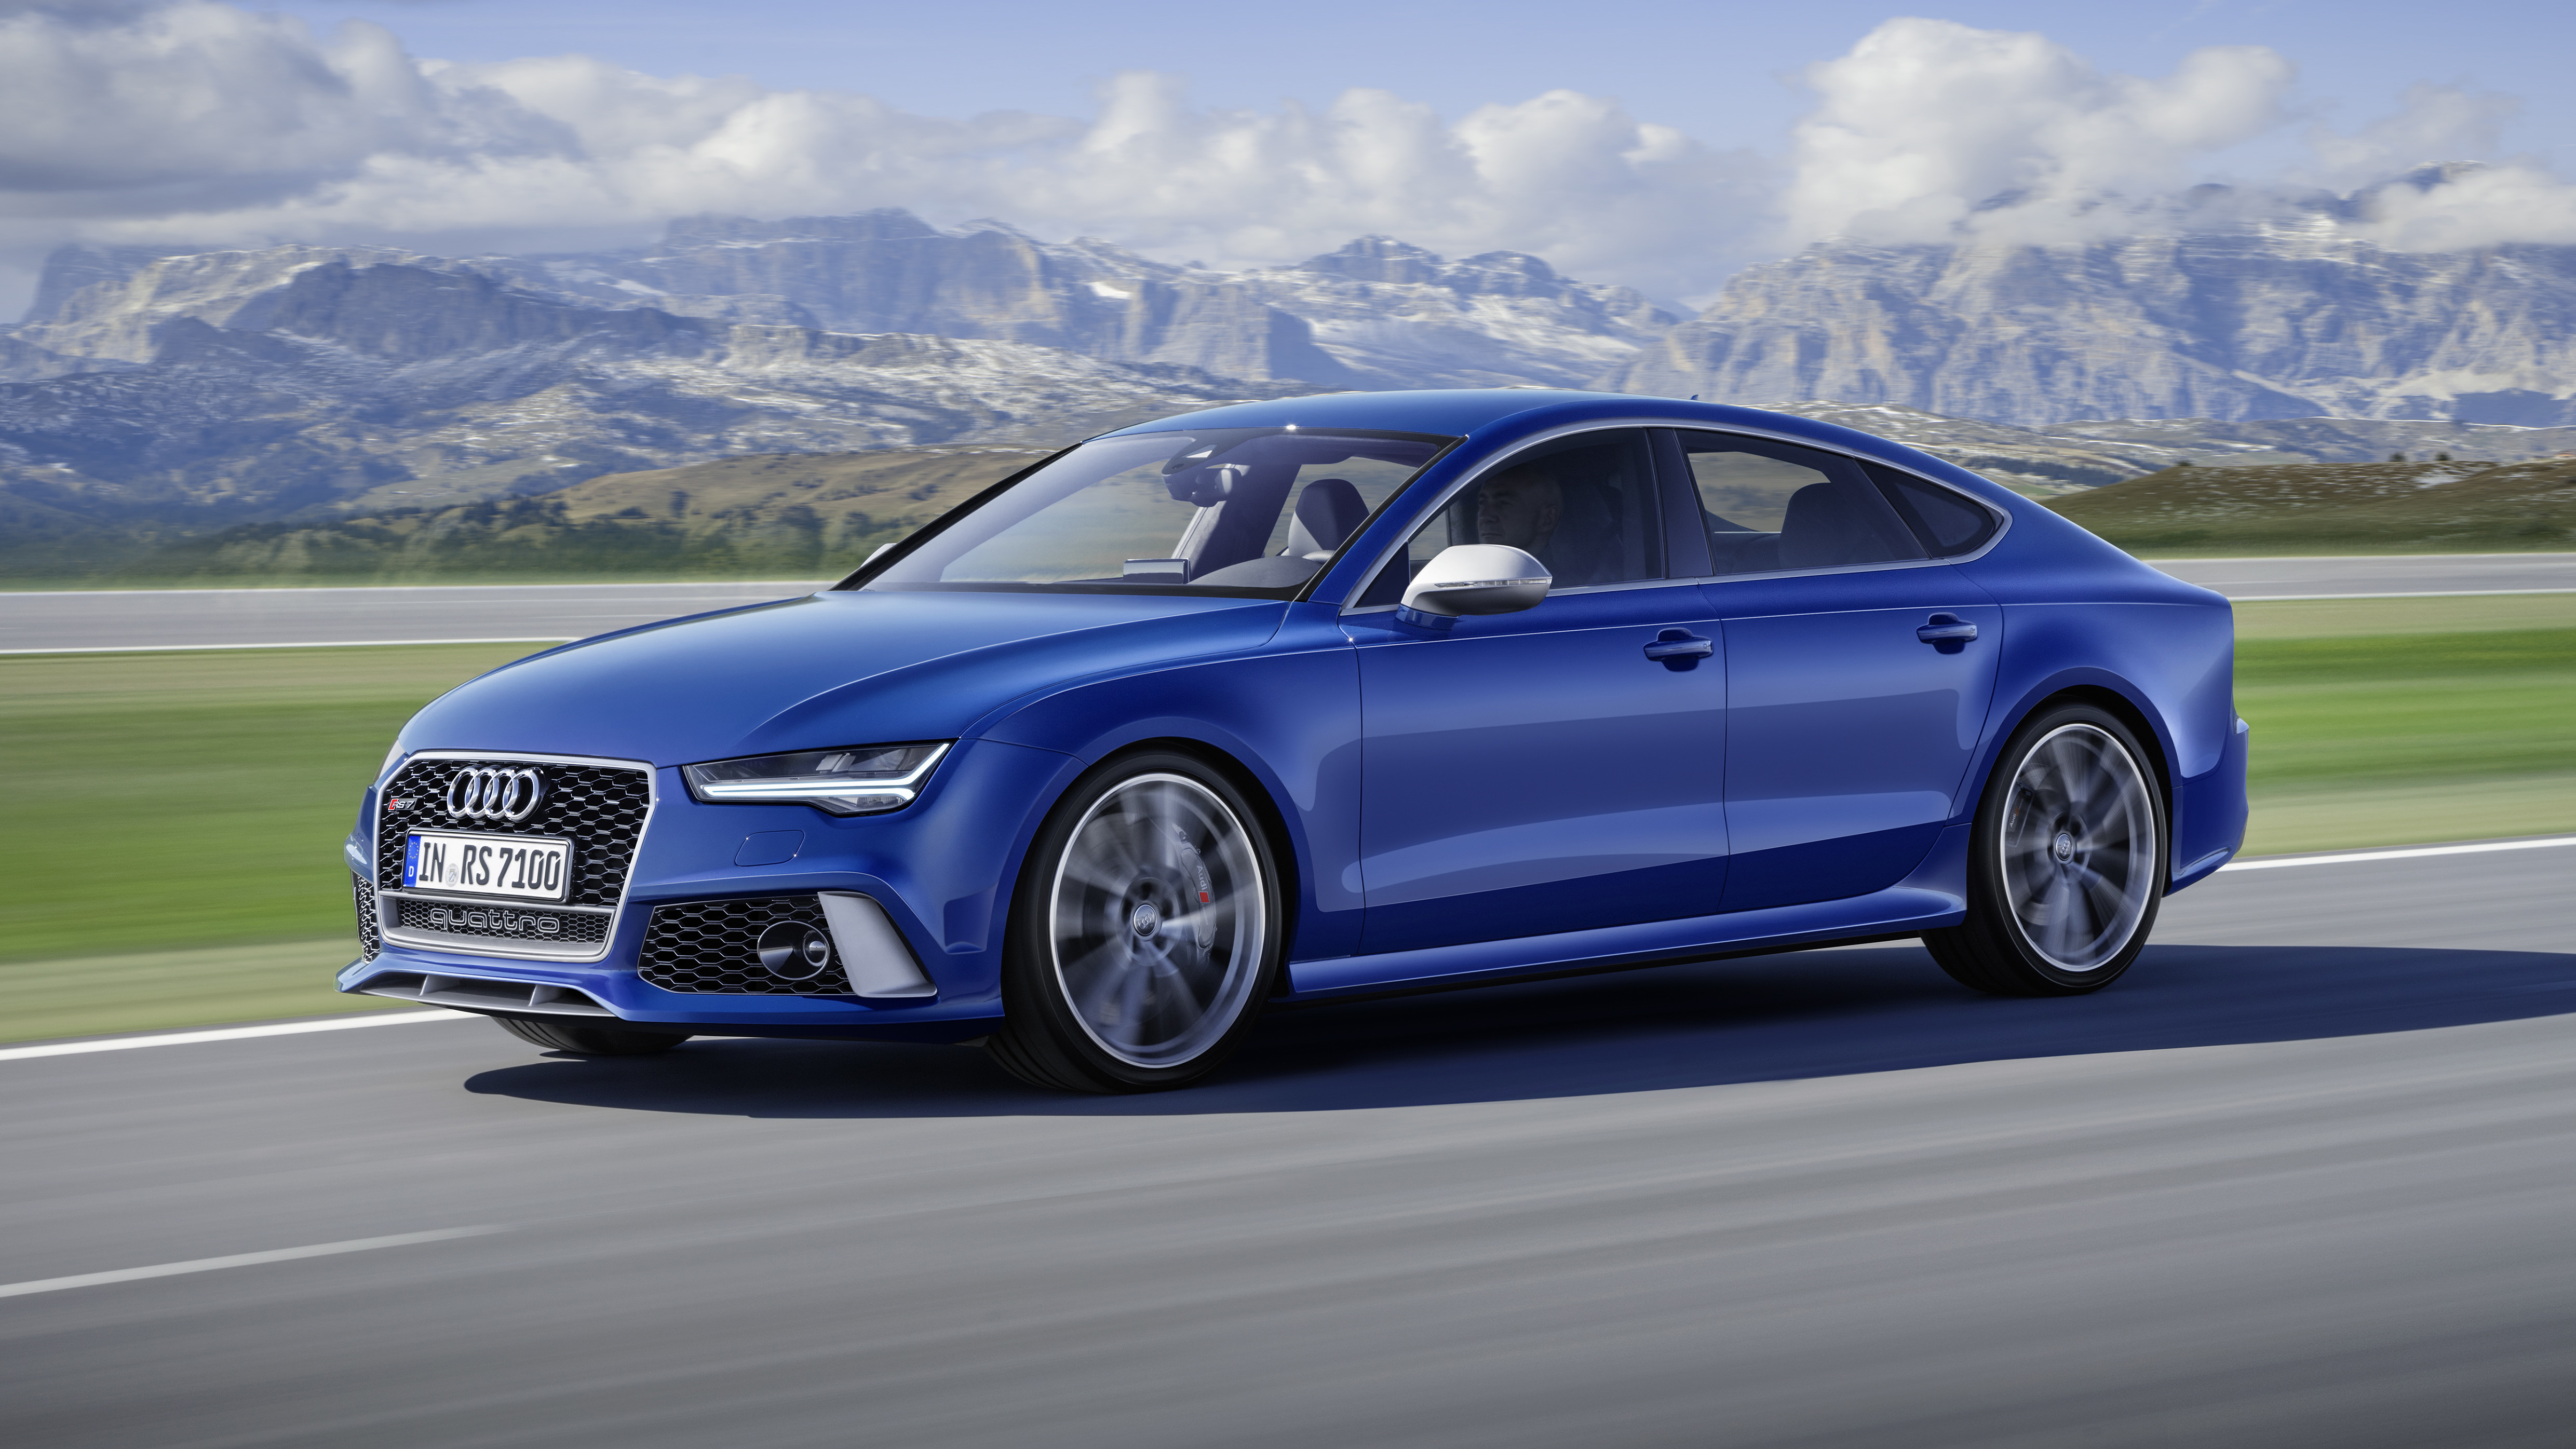 review the 597bhp audi rs7 performance top gear. Black Bedroom Furniture Sets. Home Design Ideas